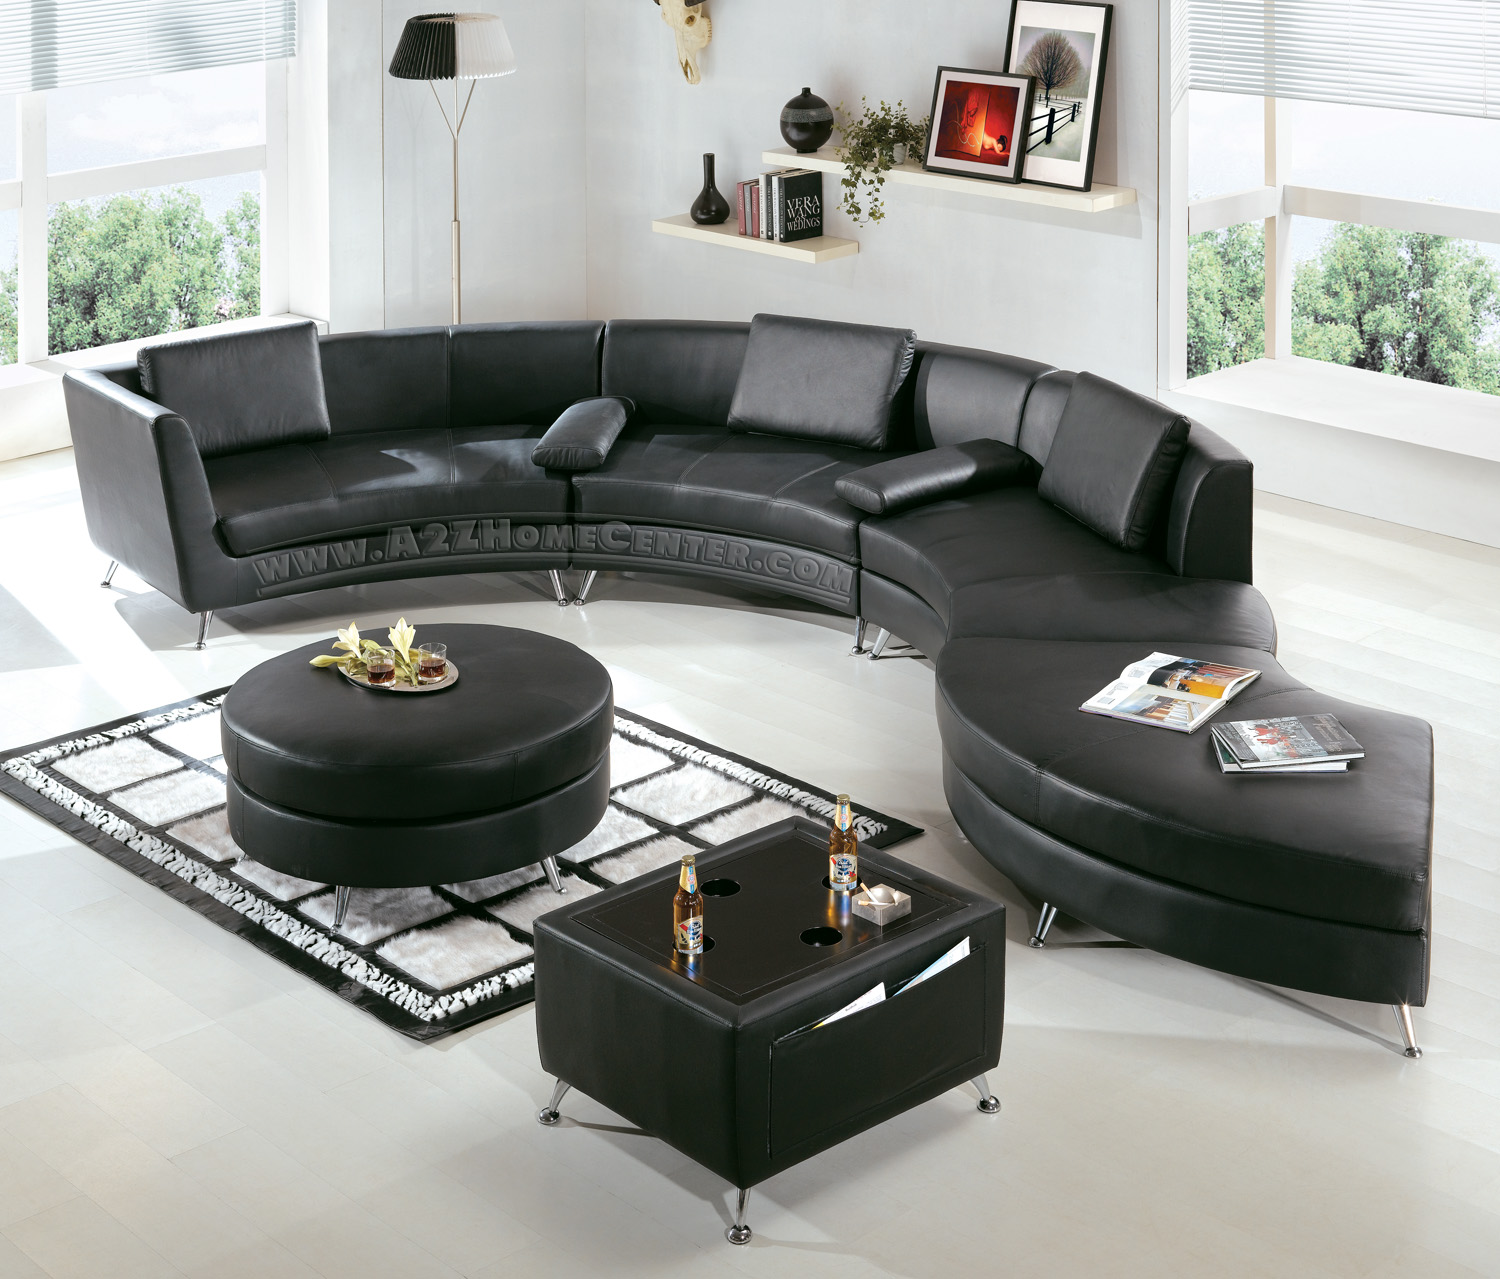 Modern Line Furniture - Commercial Furniture - Custom Made Furniture |  Seating Collection | | | 2-in-1 Modern Furniture Black Sectional Sofa  (Optional ...